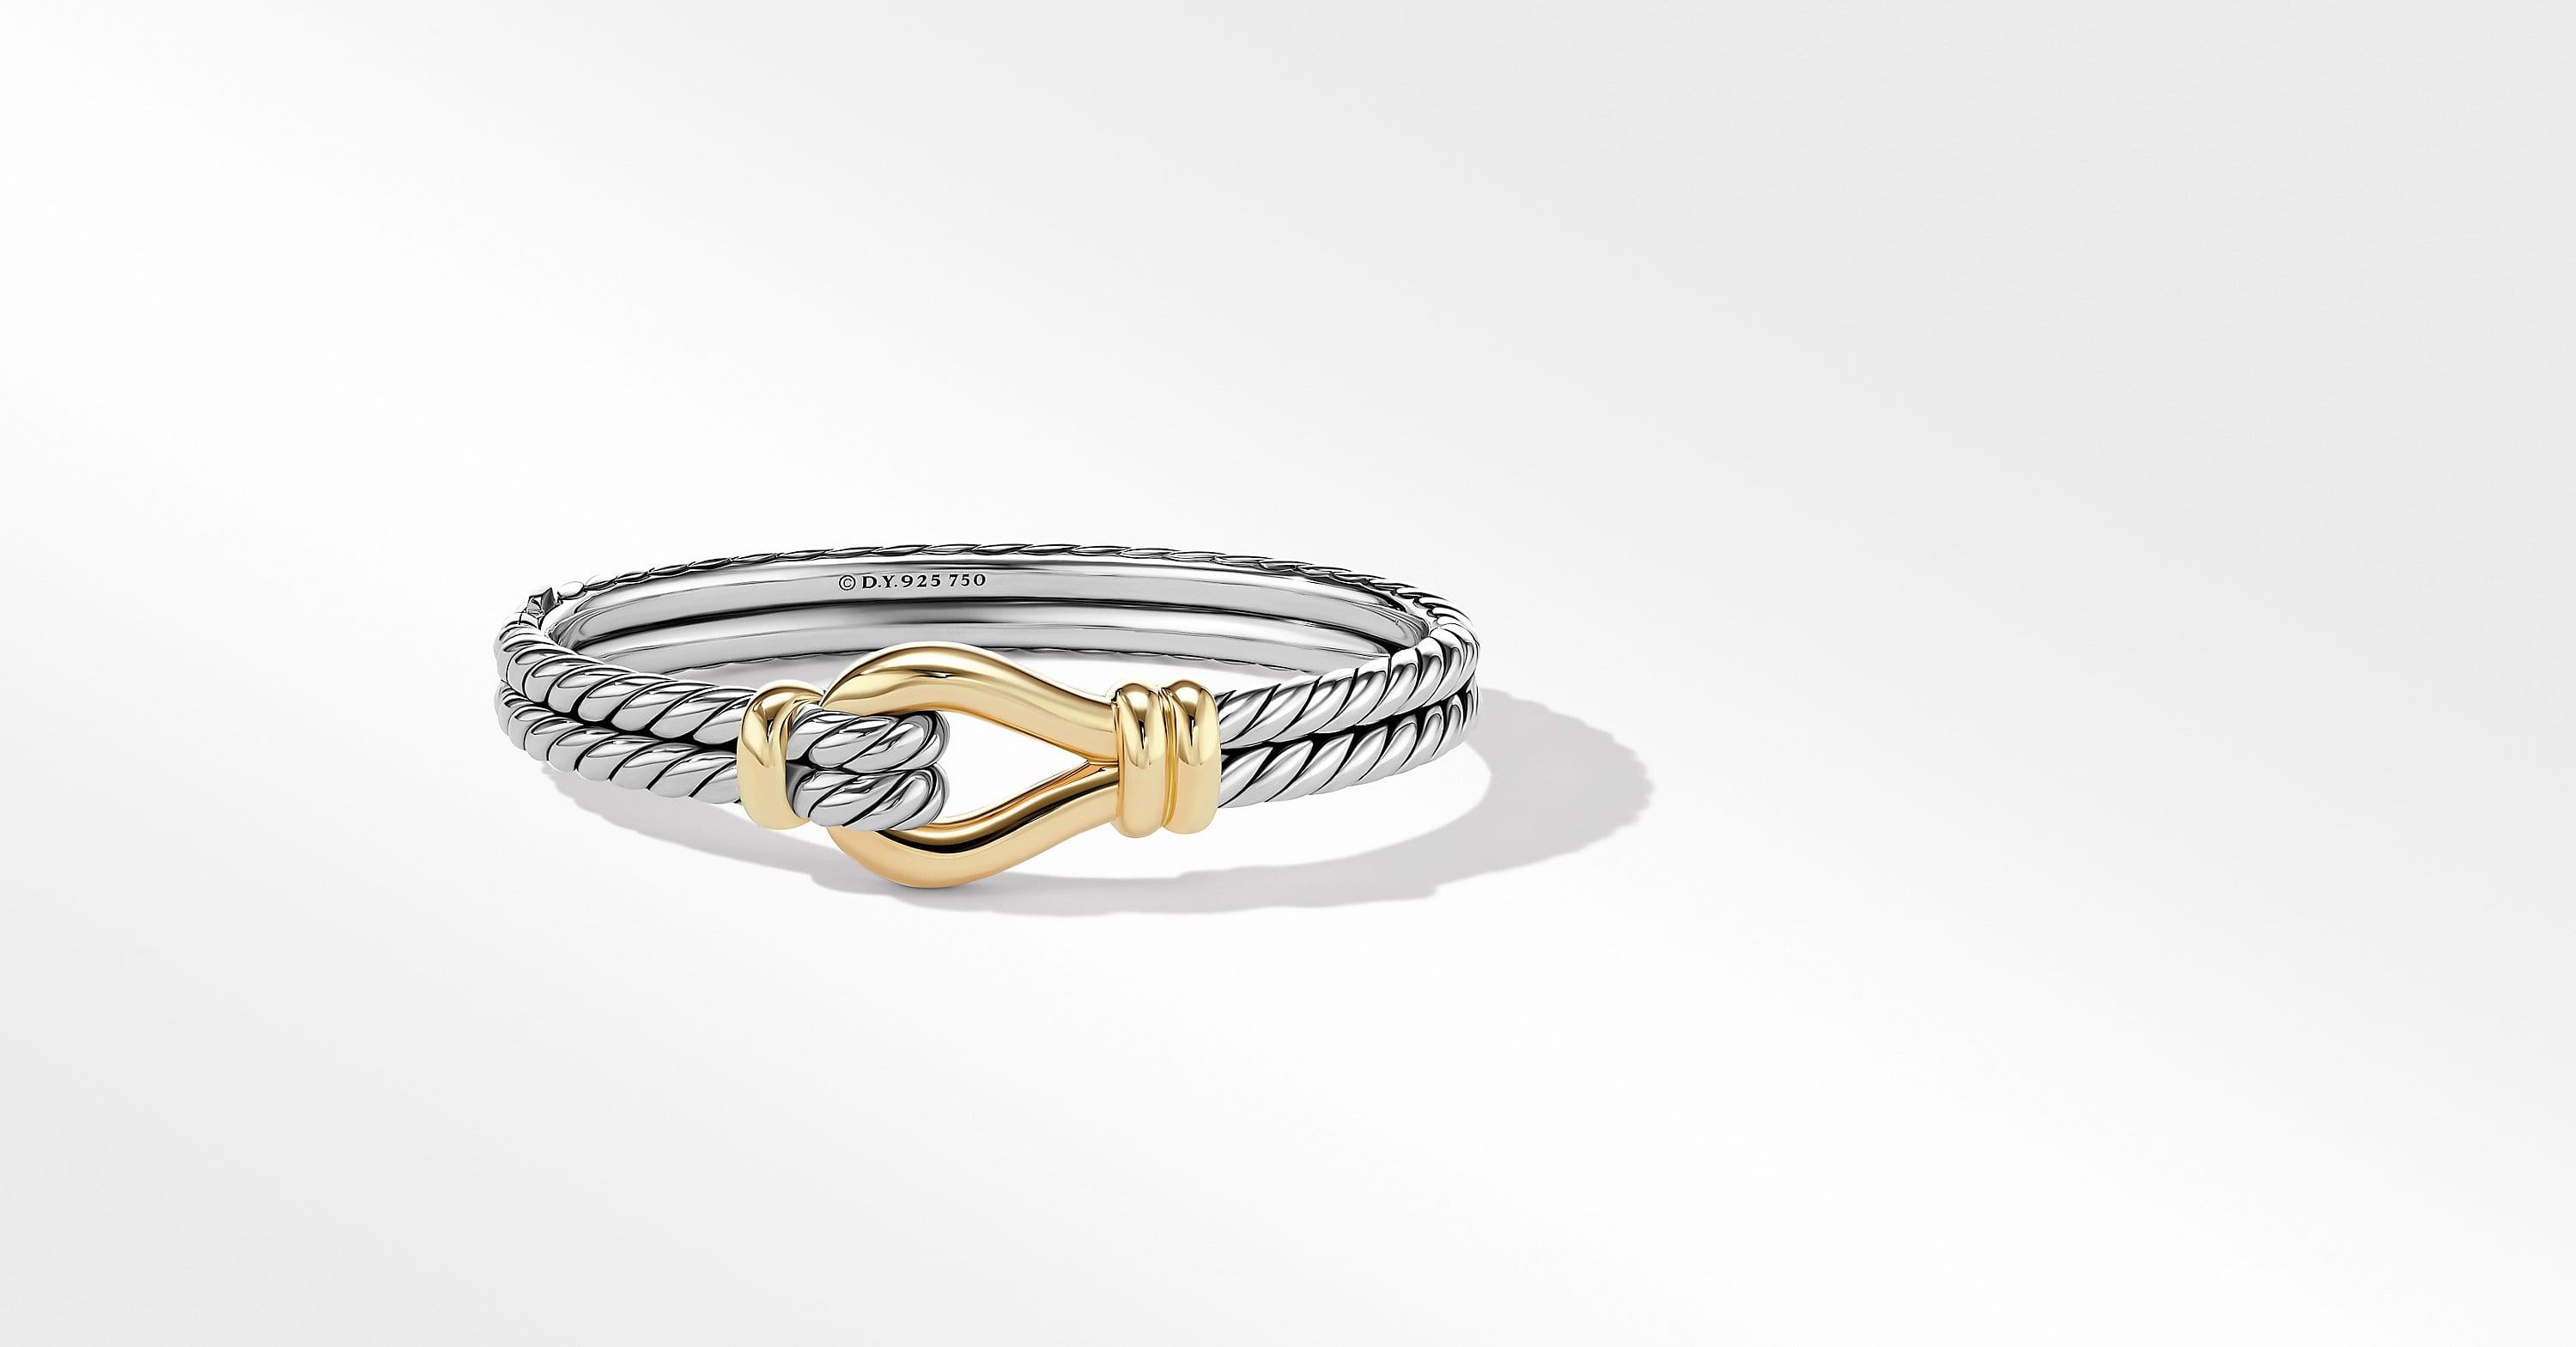 Thoroughbred Loop Bracelet with 18K Yellow Gold, 16mm